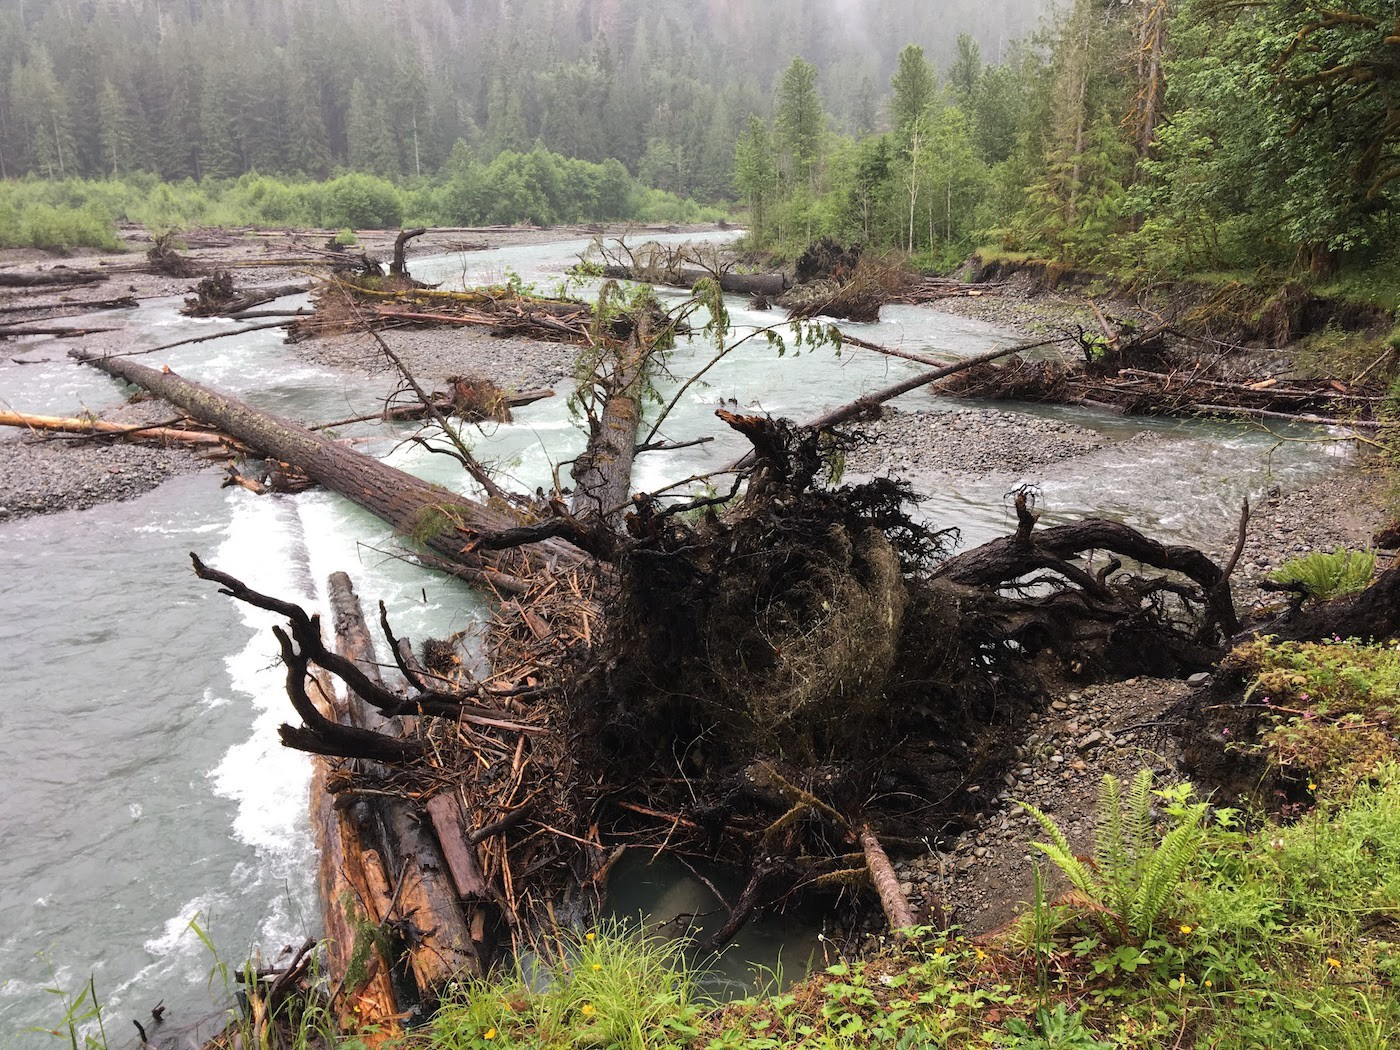 An enormous Douglas fir tree laying in the river among other old trees, still attached to its rootball.